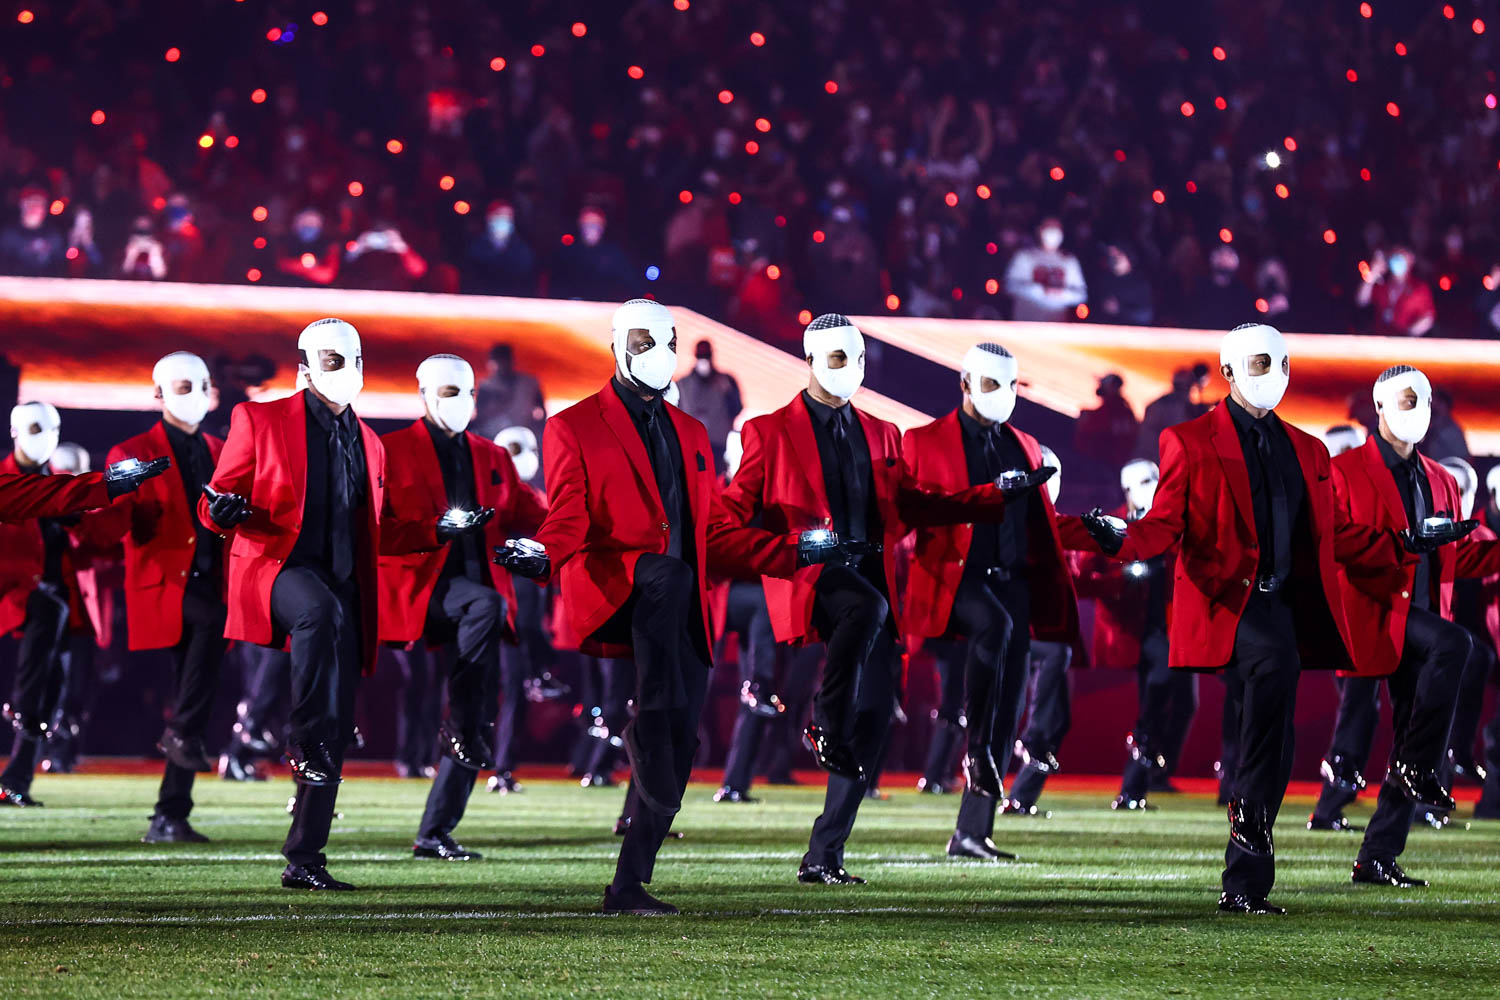 The Weeknd's dancers performing during the Pepsi Super Bowl LV Halftime Show, Sunday, Feb. 7, 2021 in Tampa.